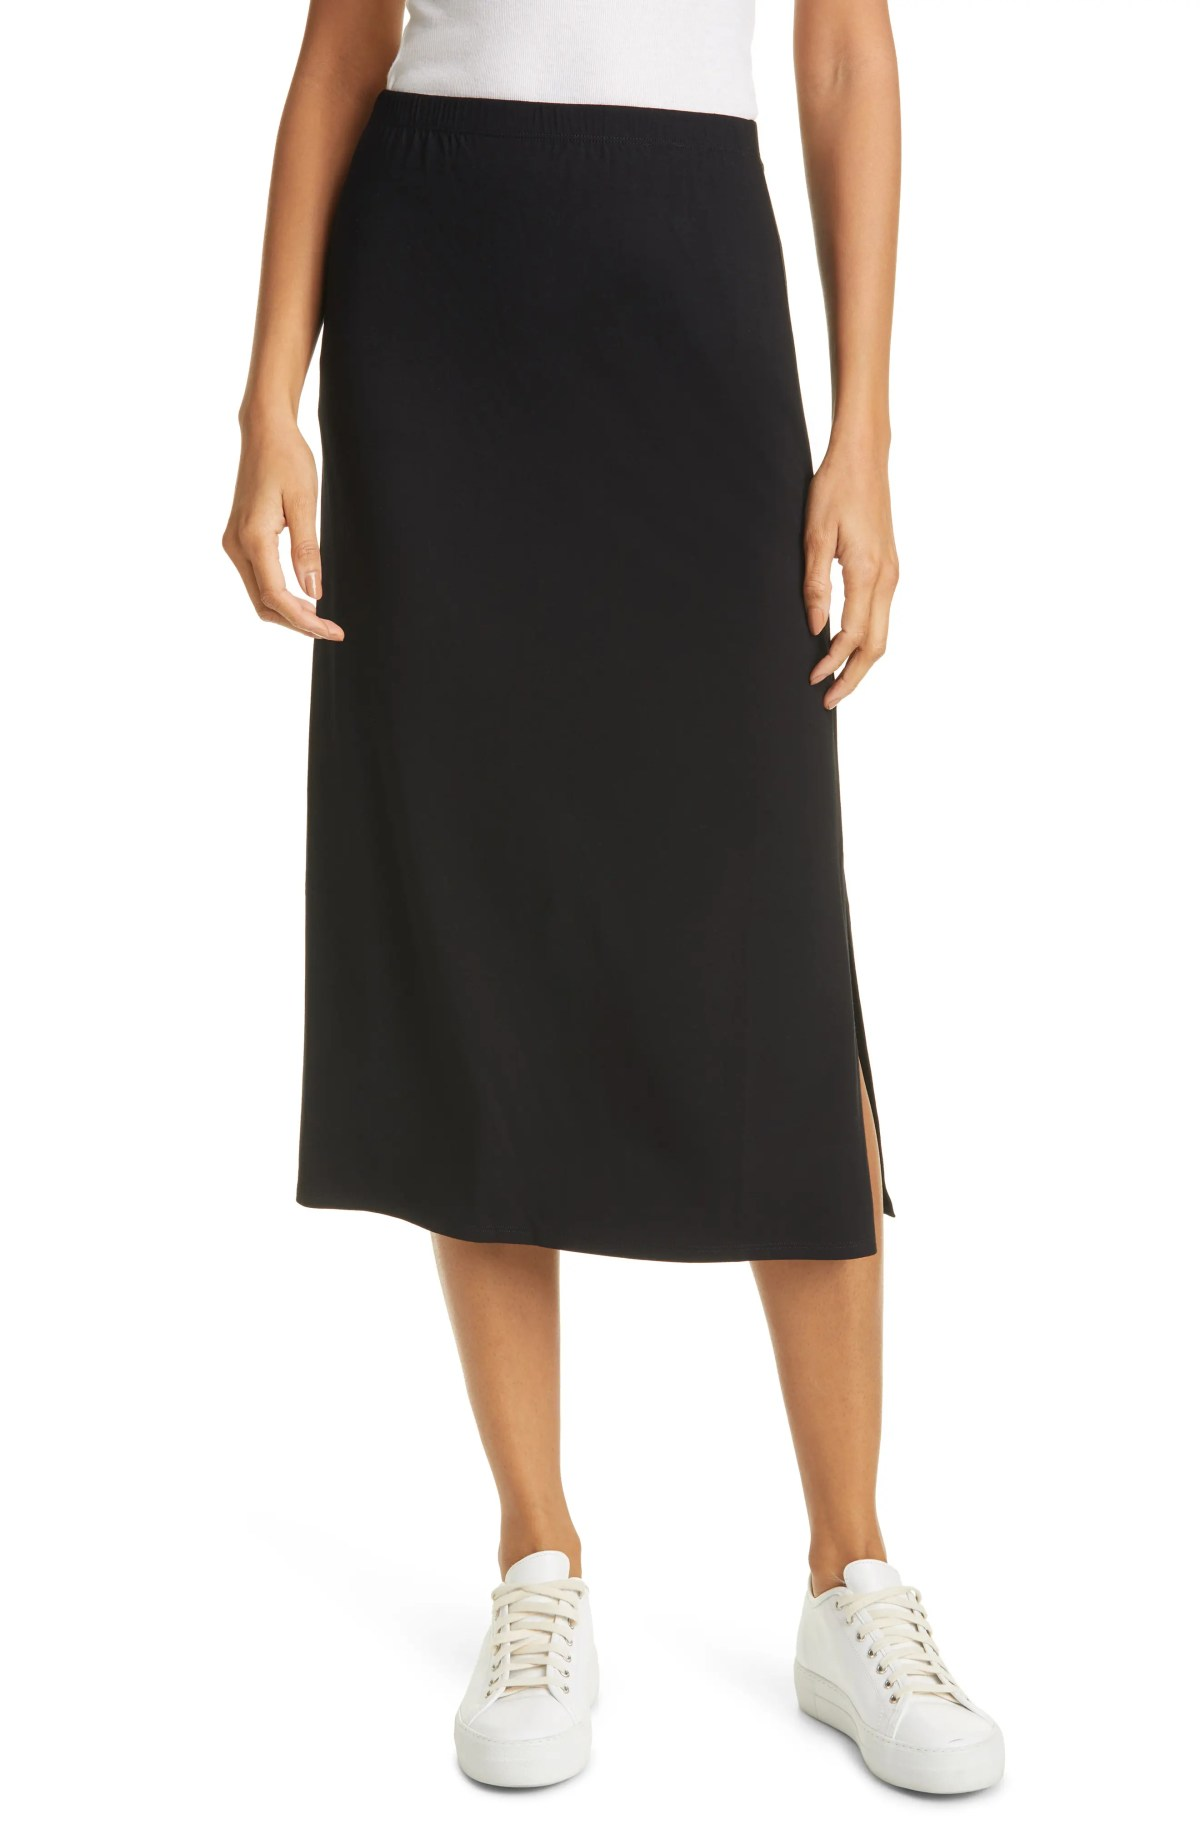 EILEEN FISHER A-Line Skirt, Main, color, BLACK